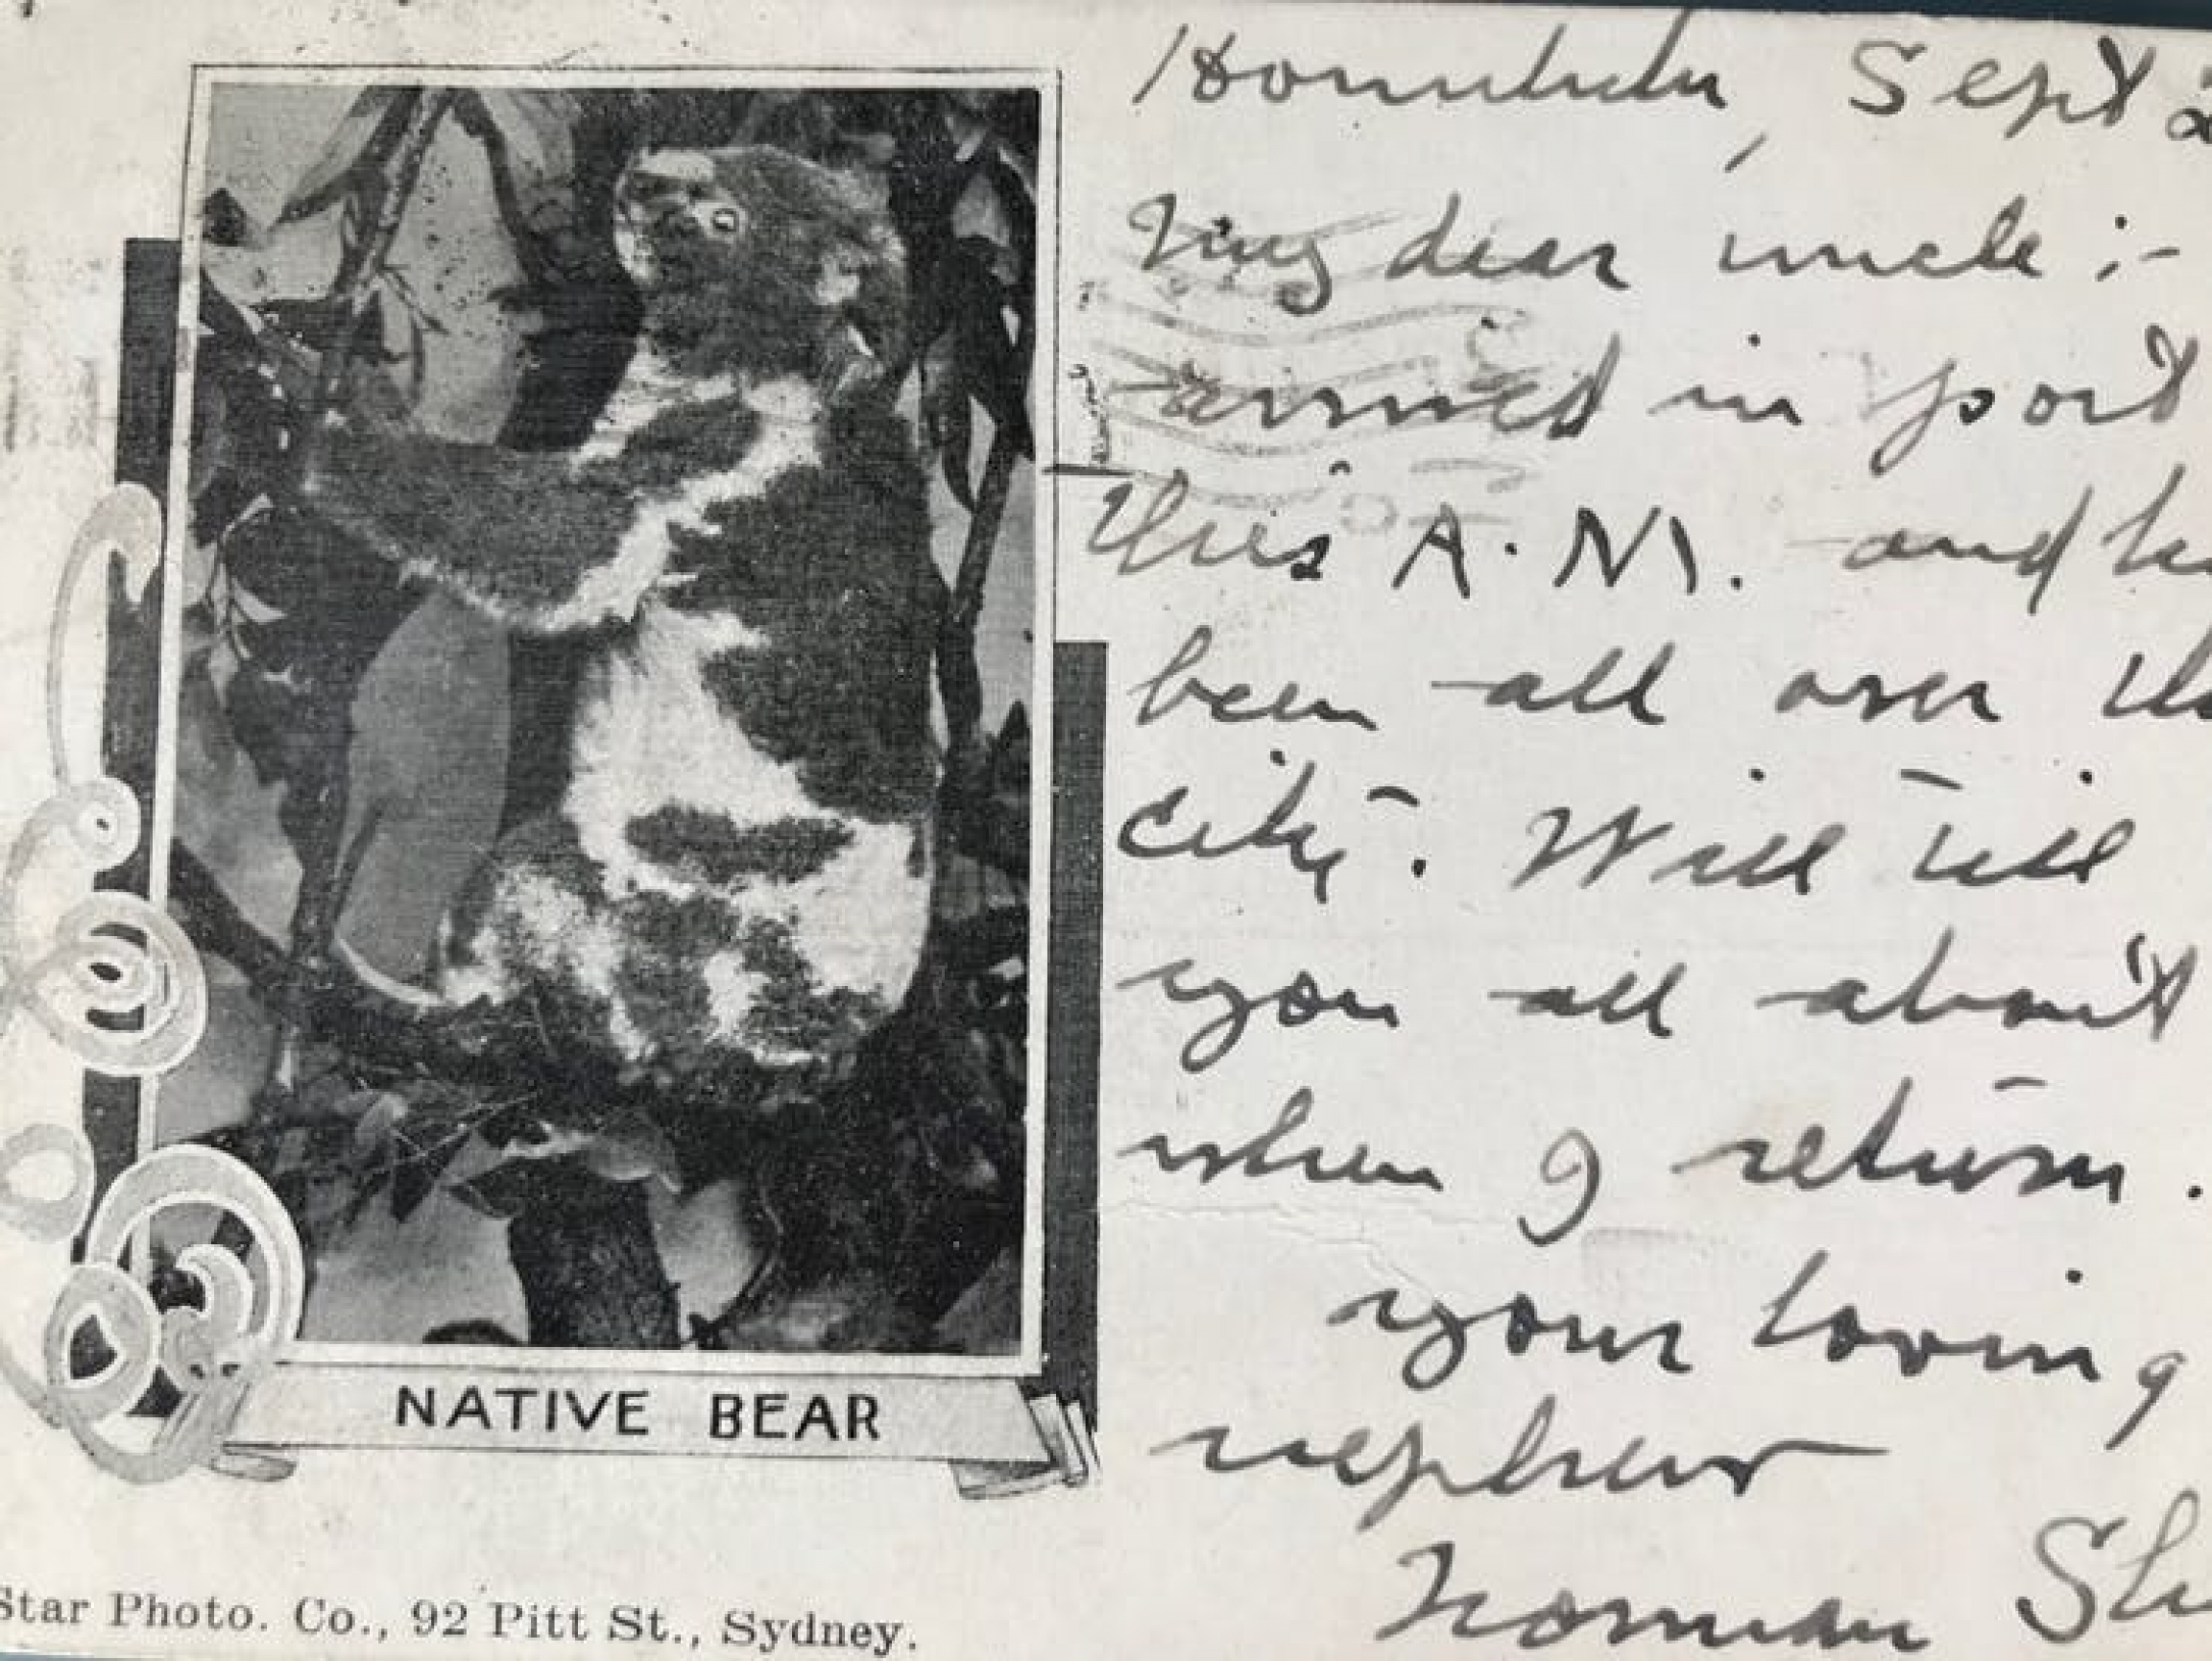 An old postcard featuring a Koala.